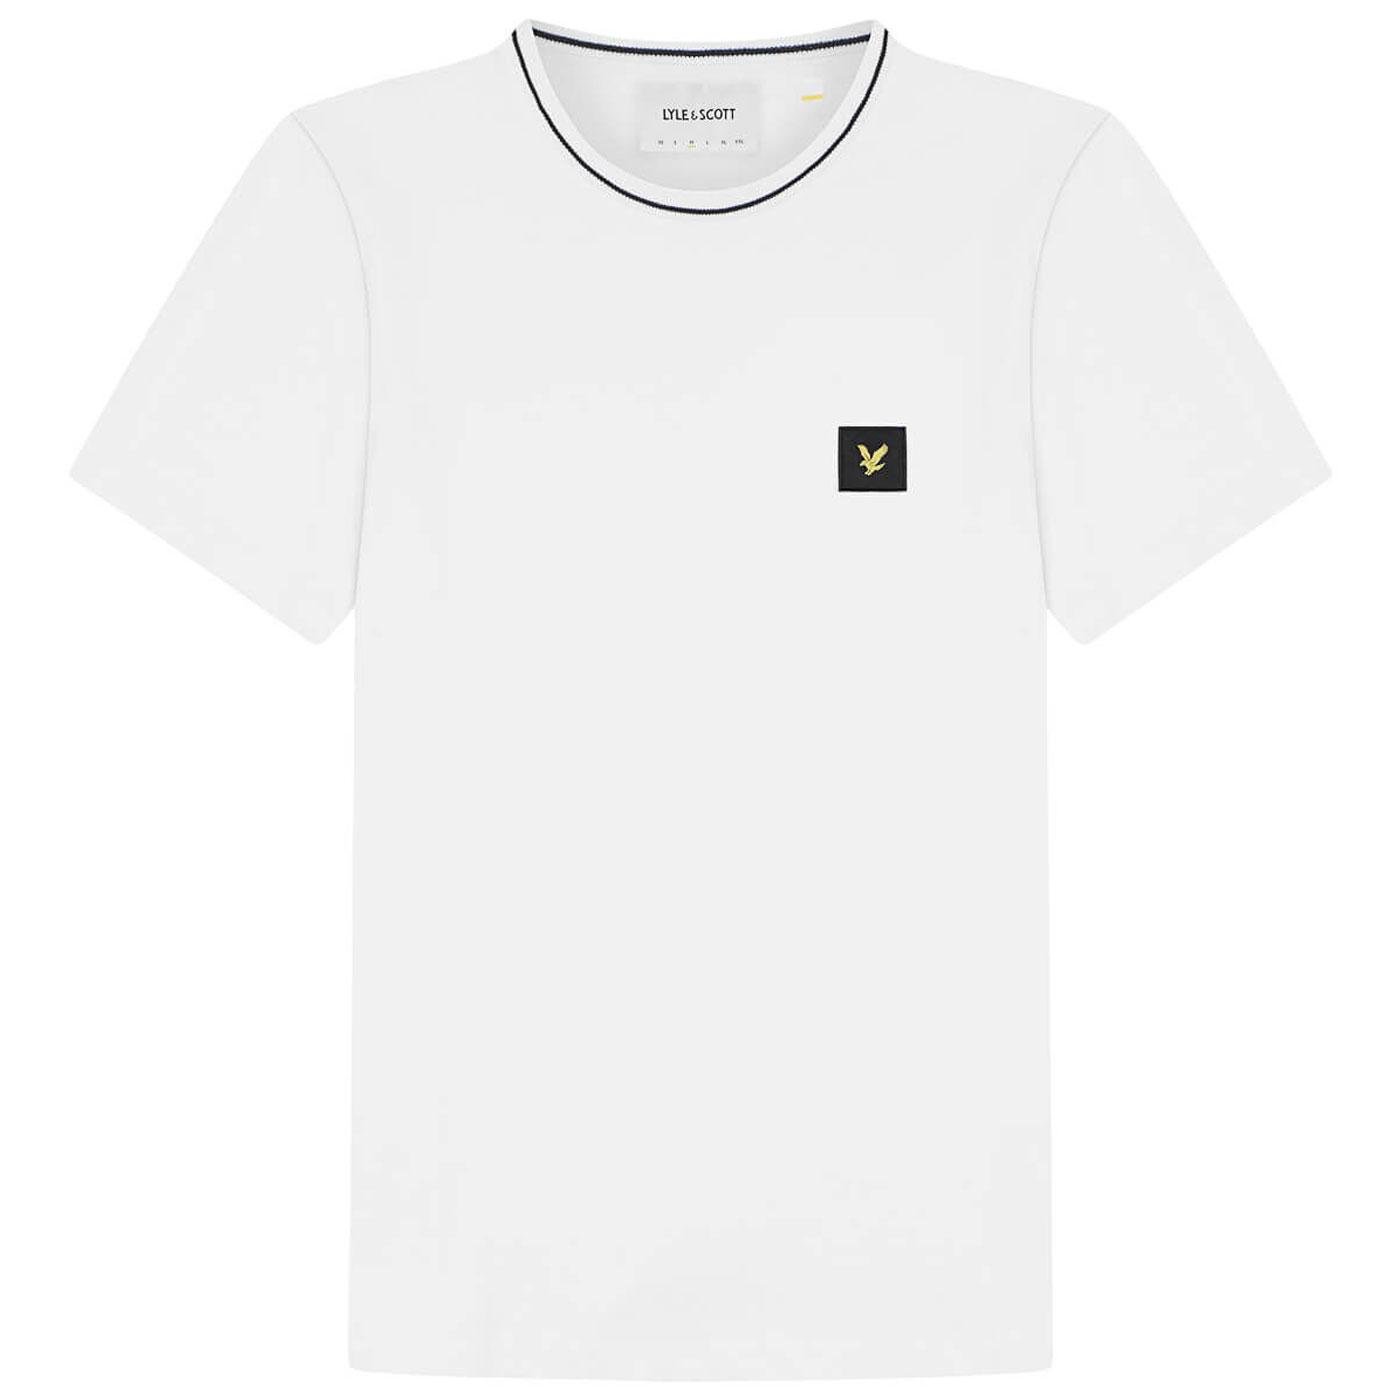 LYLE & SCOTT Mod Casuals Retro Tipped T-Shirt W